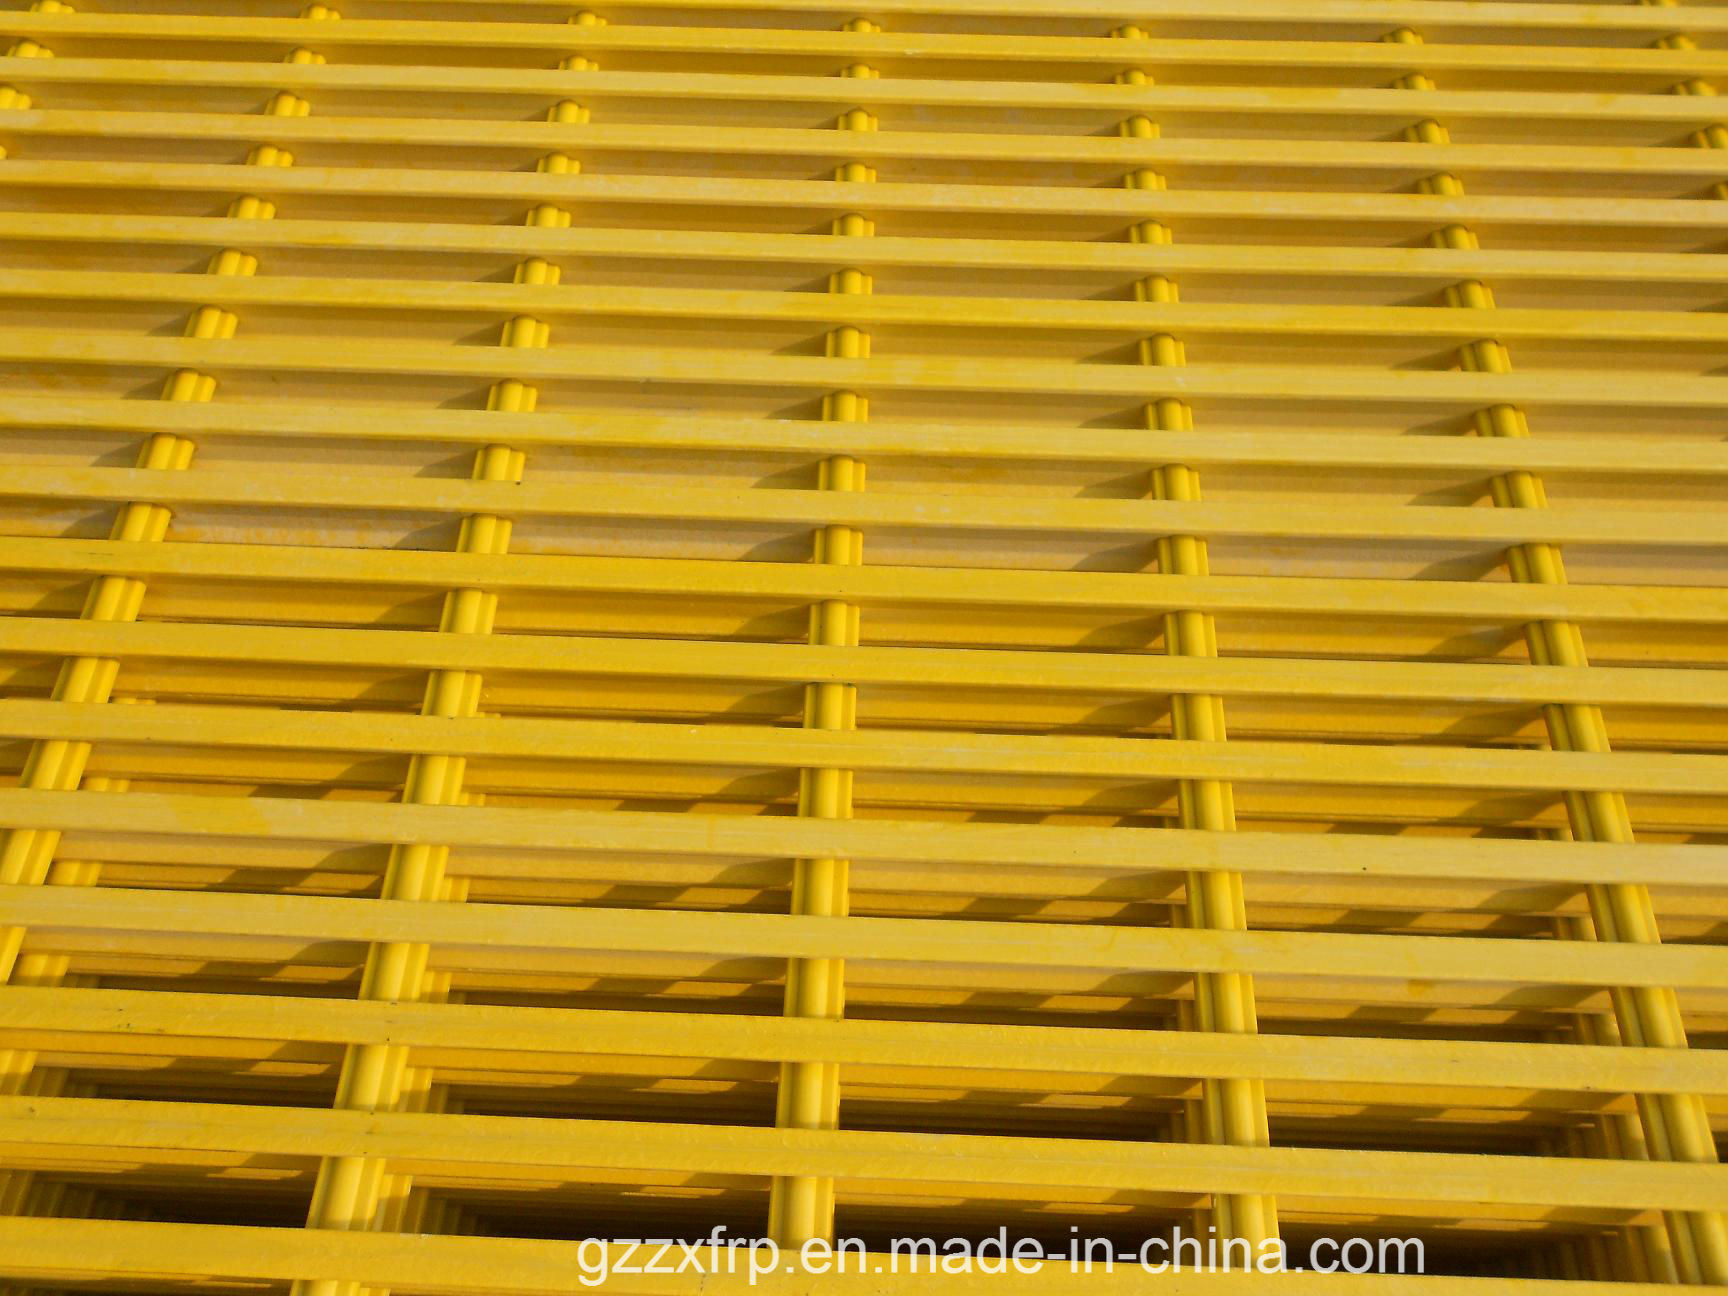 FRP/Fiberglass Pultruded Grating